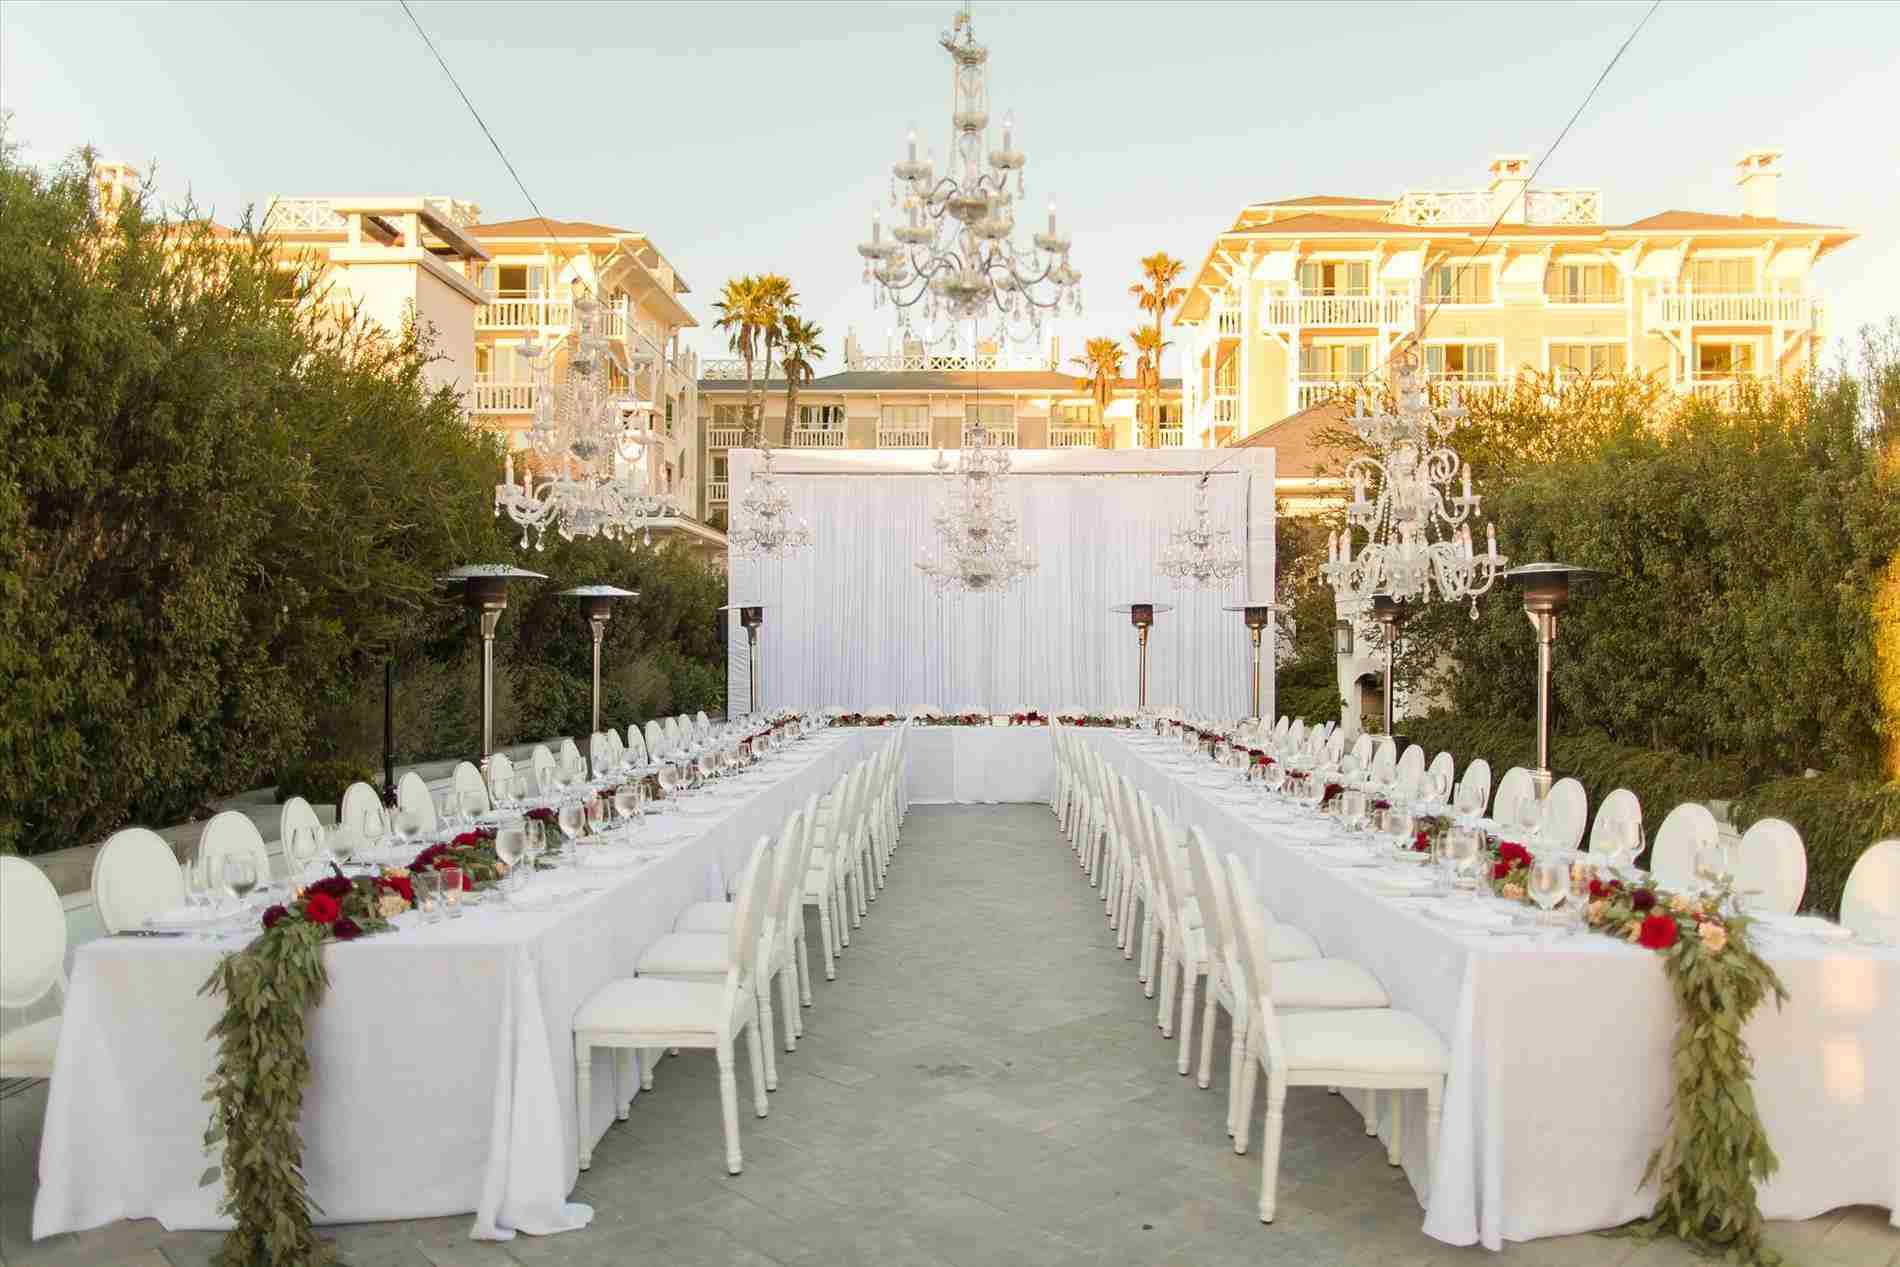 vase rentals los angeles of wedding decor rental los angeles bright wedding ideas inside chiavari chair rental san diego rhchiavarichairrentalsswordpresscom chiavari wedding decor rental los